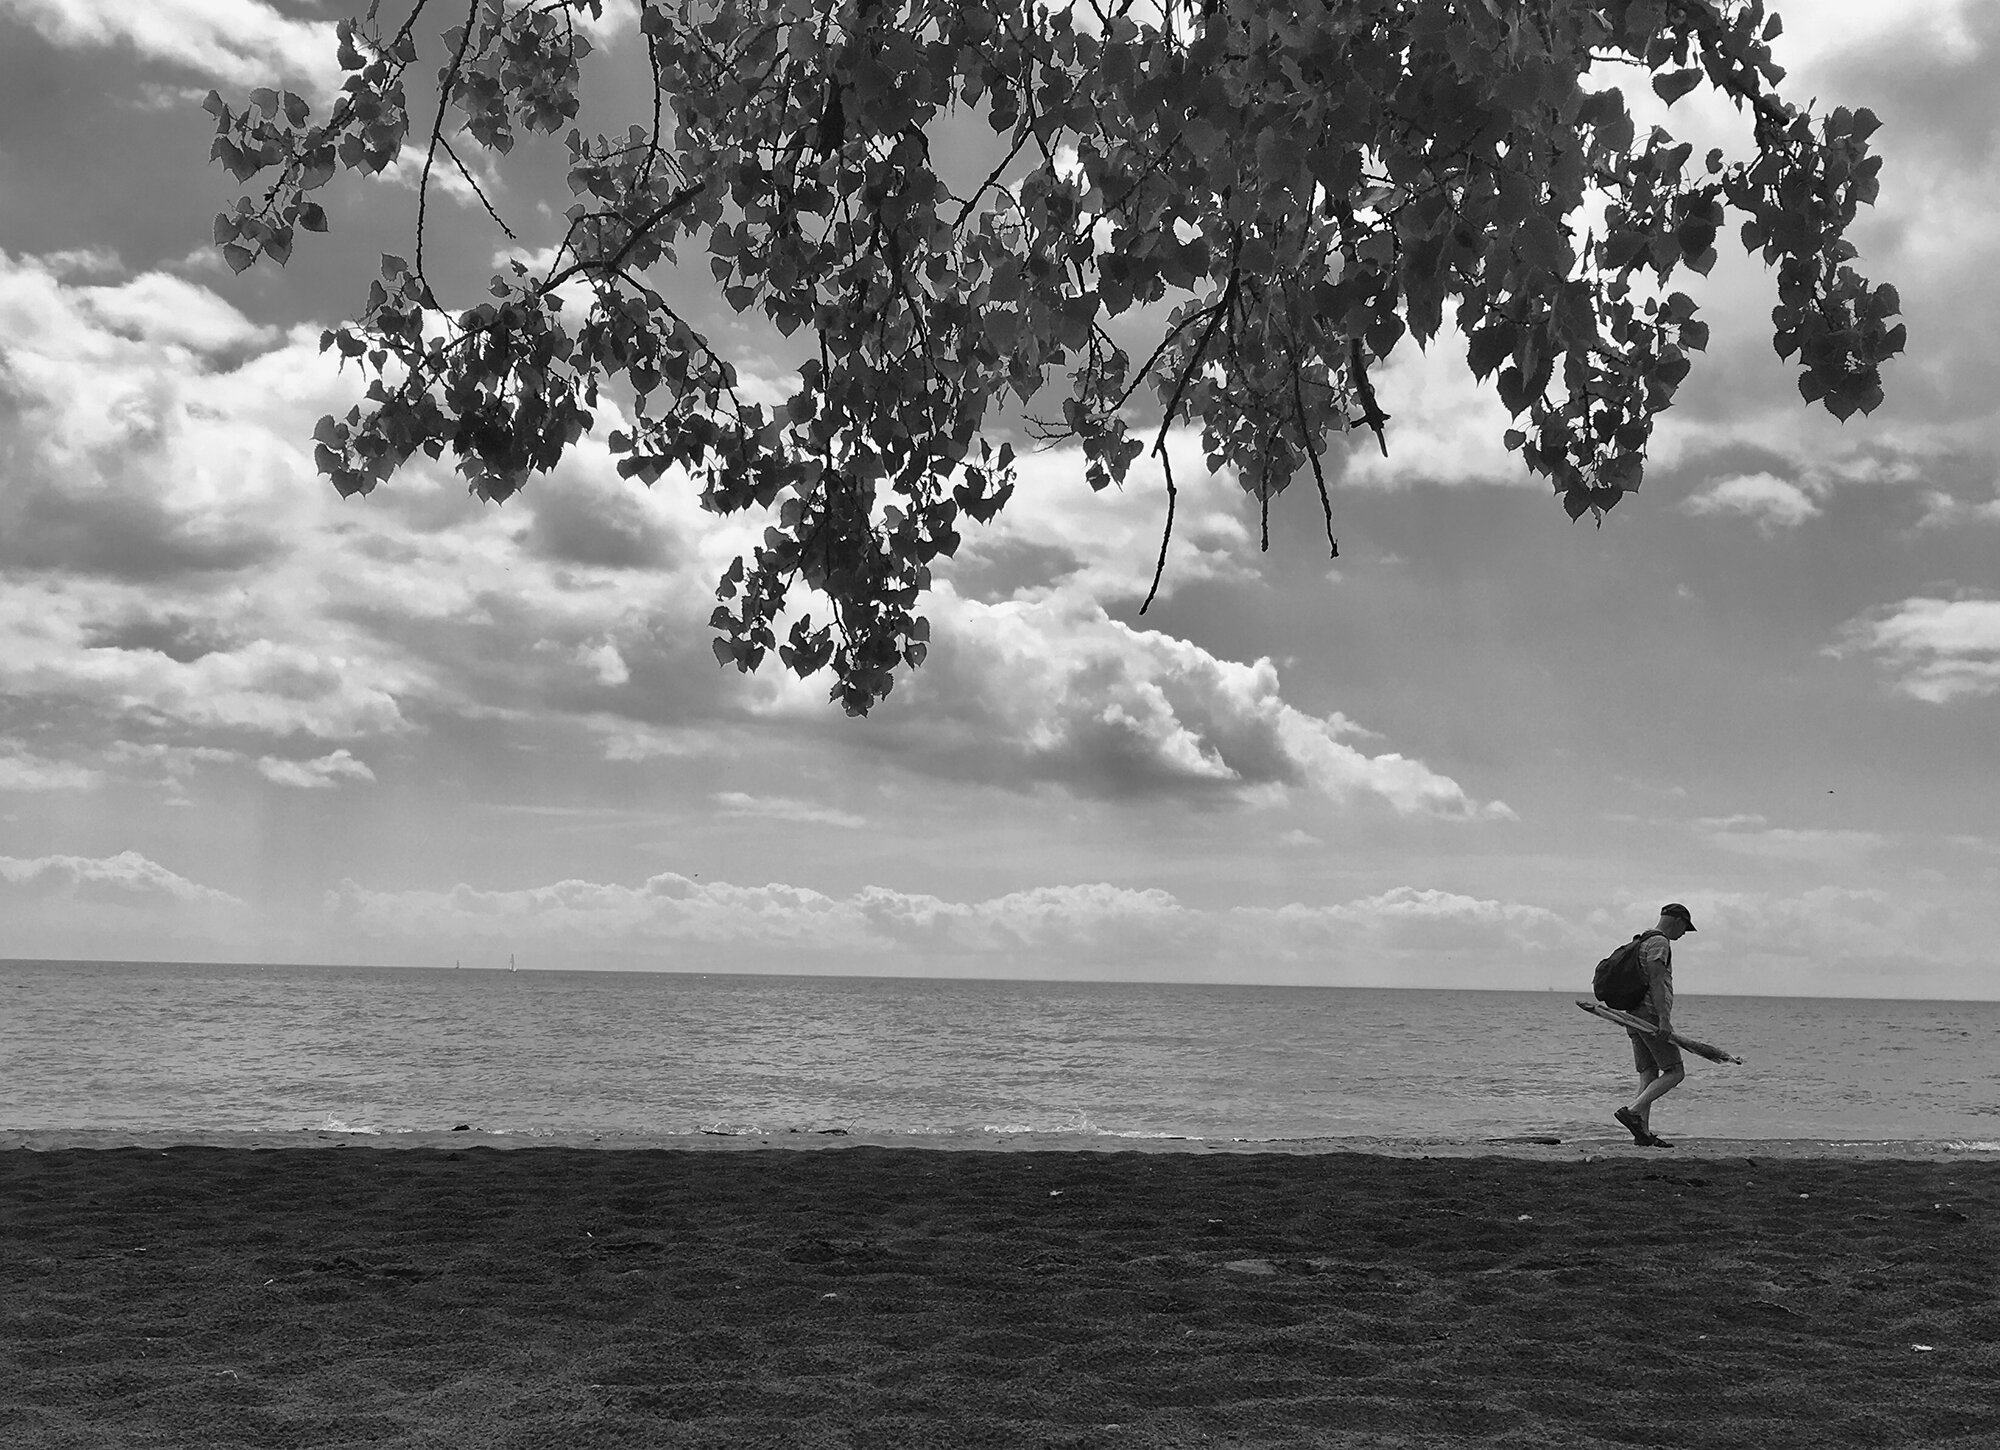 Beachcomber on Lake Ontario in black and white.